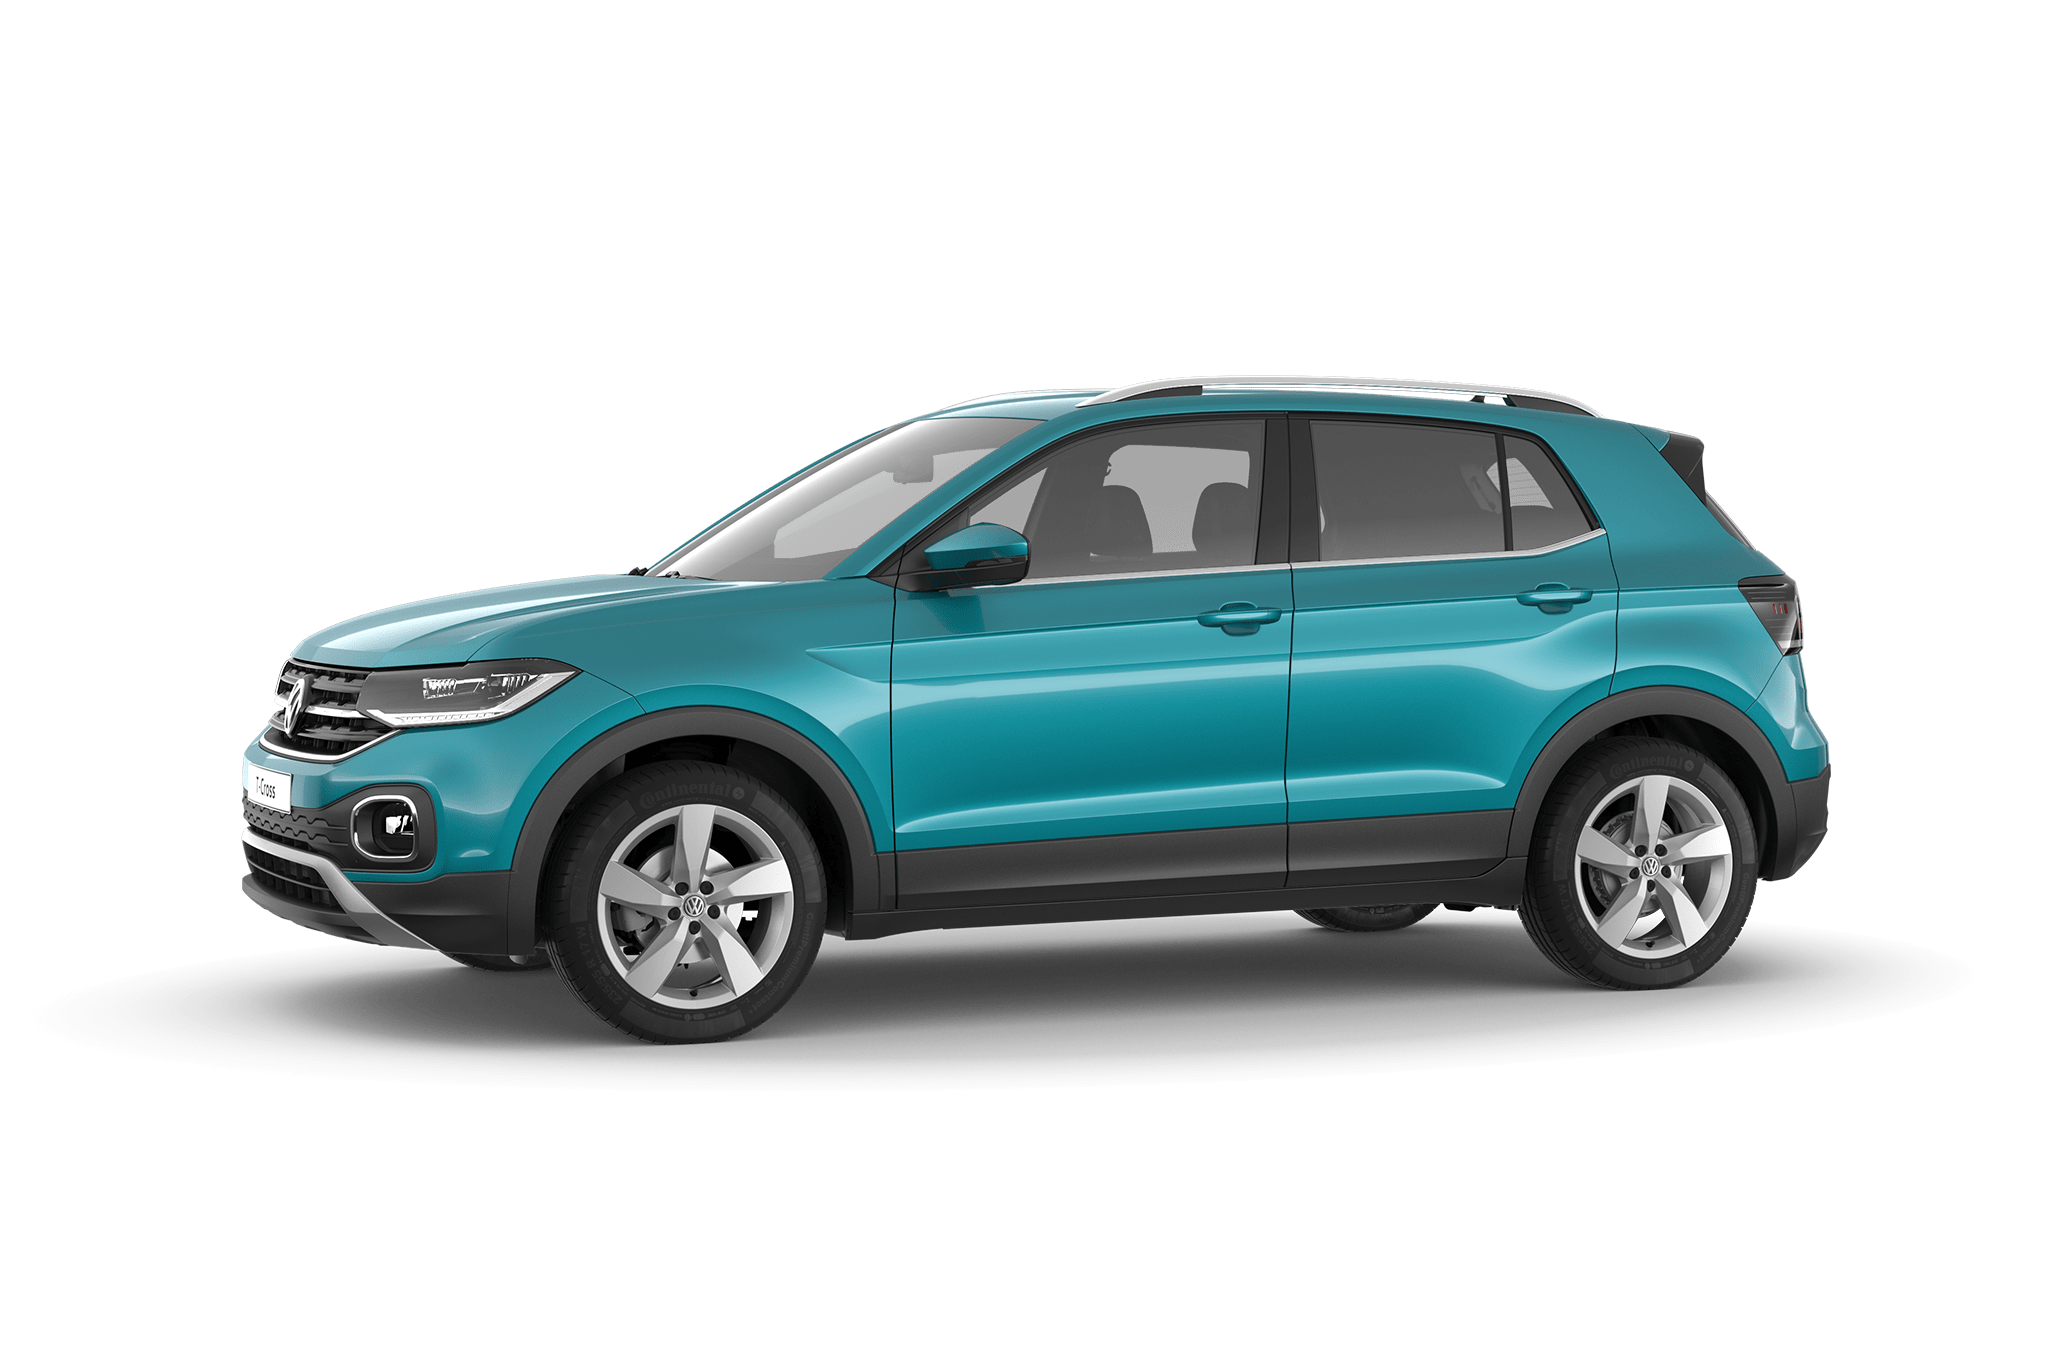 Volkswagen T-Cross 1.0 TSI 70kW/95pk Life Business 5d.